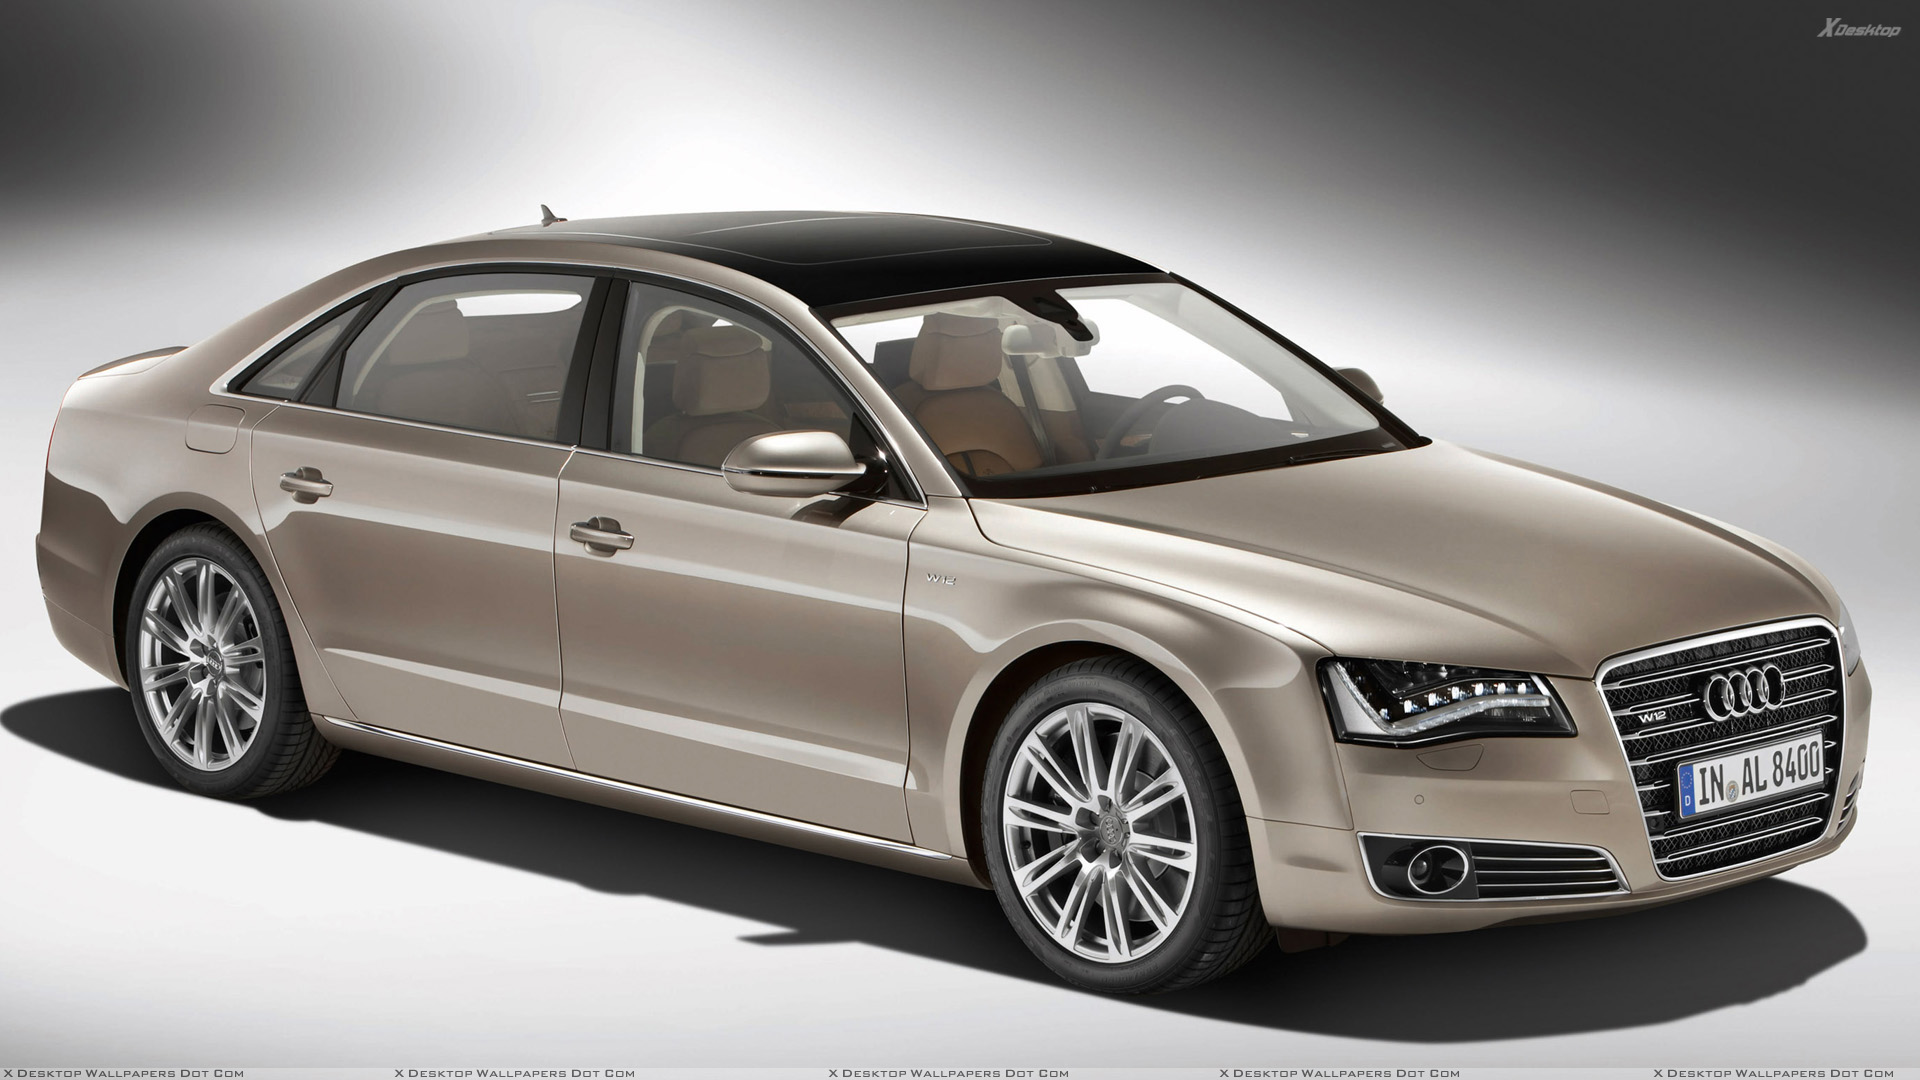 2011 audi a8 l w12 quattro side front pose in golden wallpaper. Black Bedroom Furniture Sets. Home Design Ideas